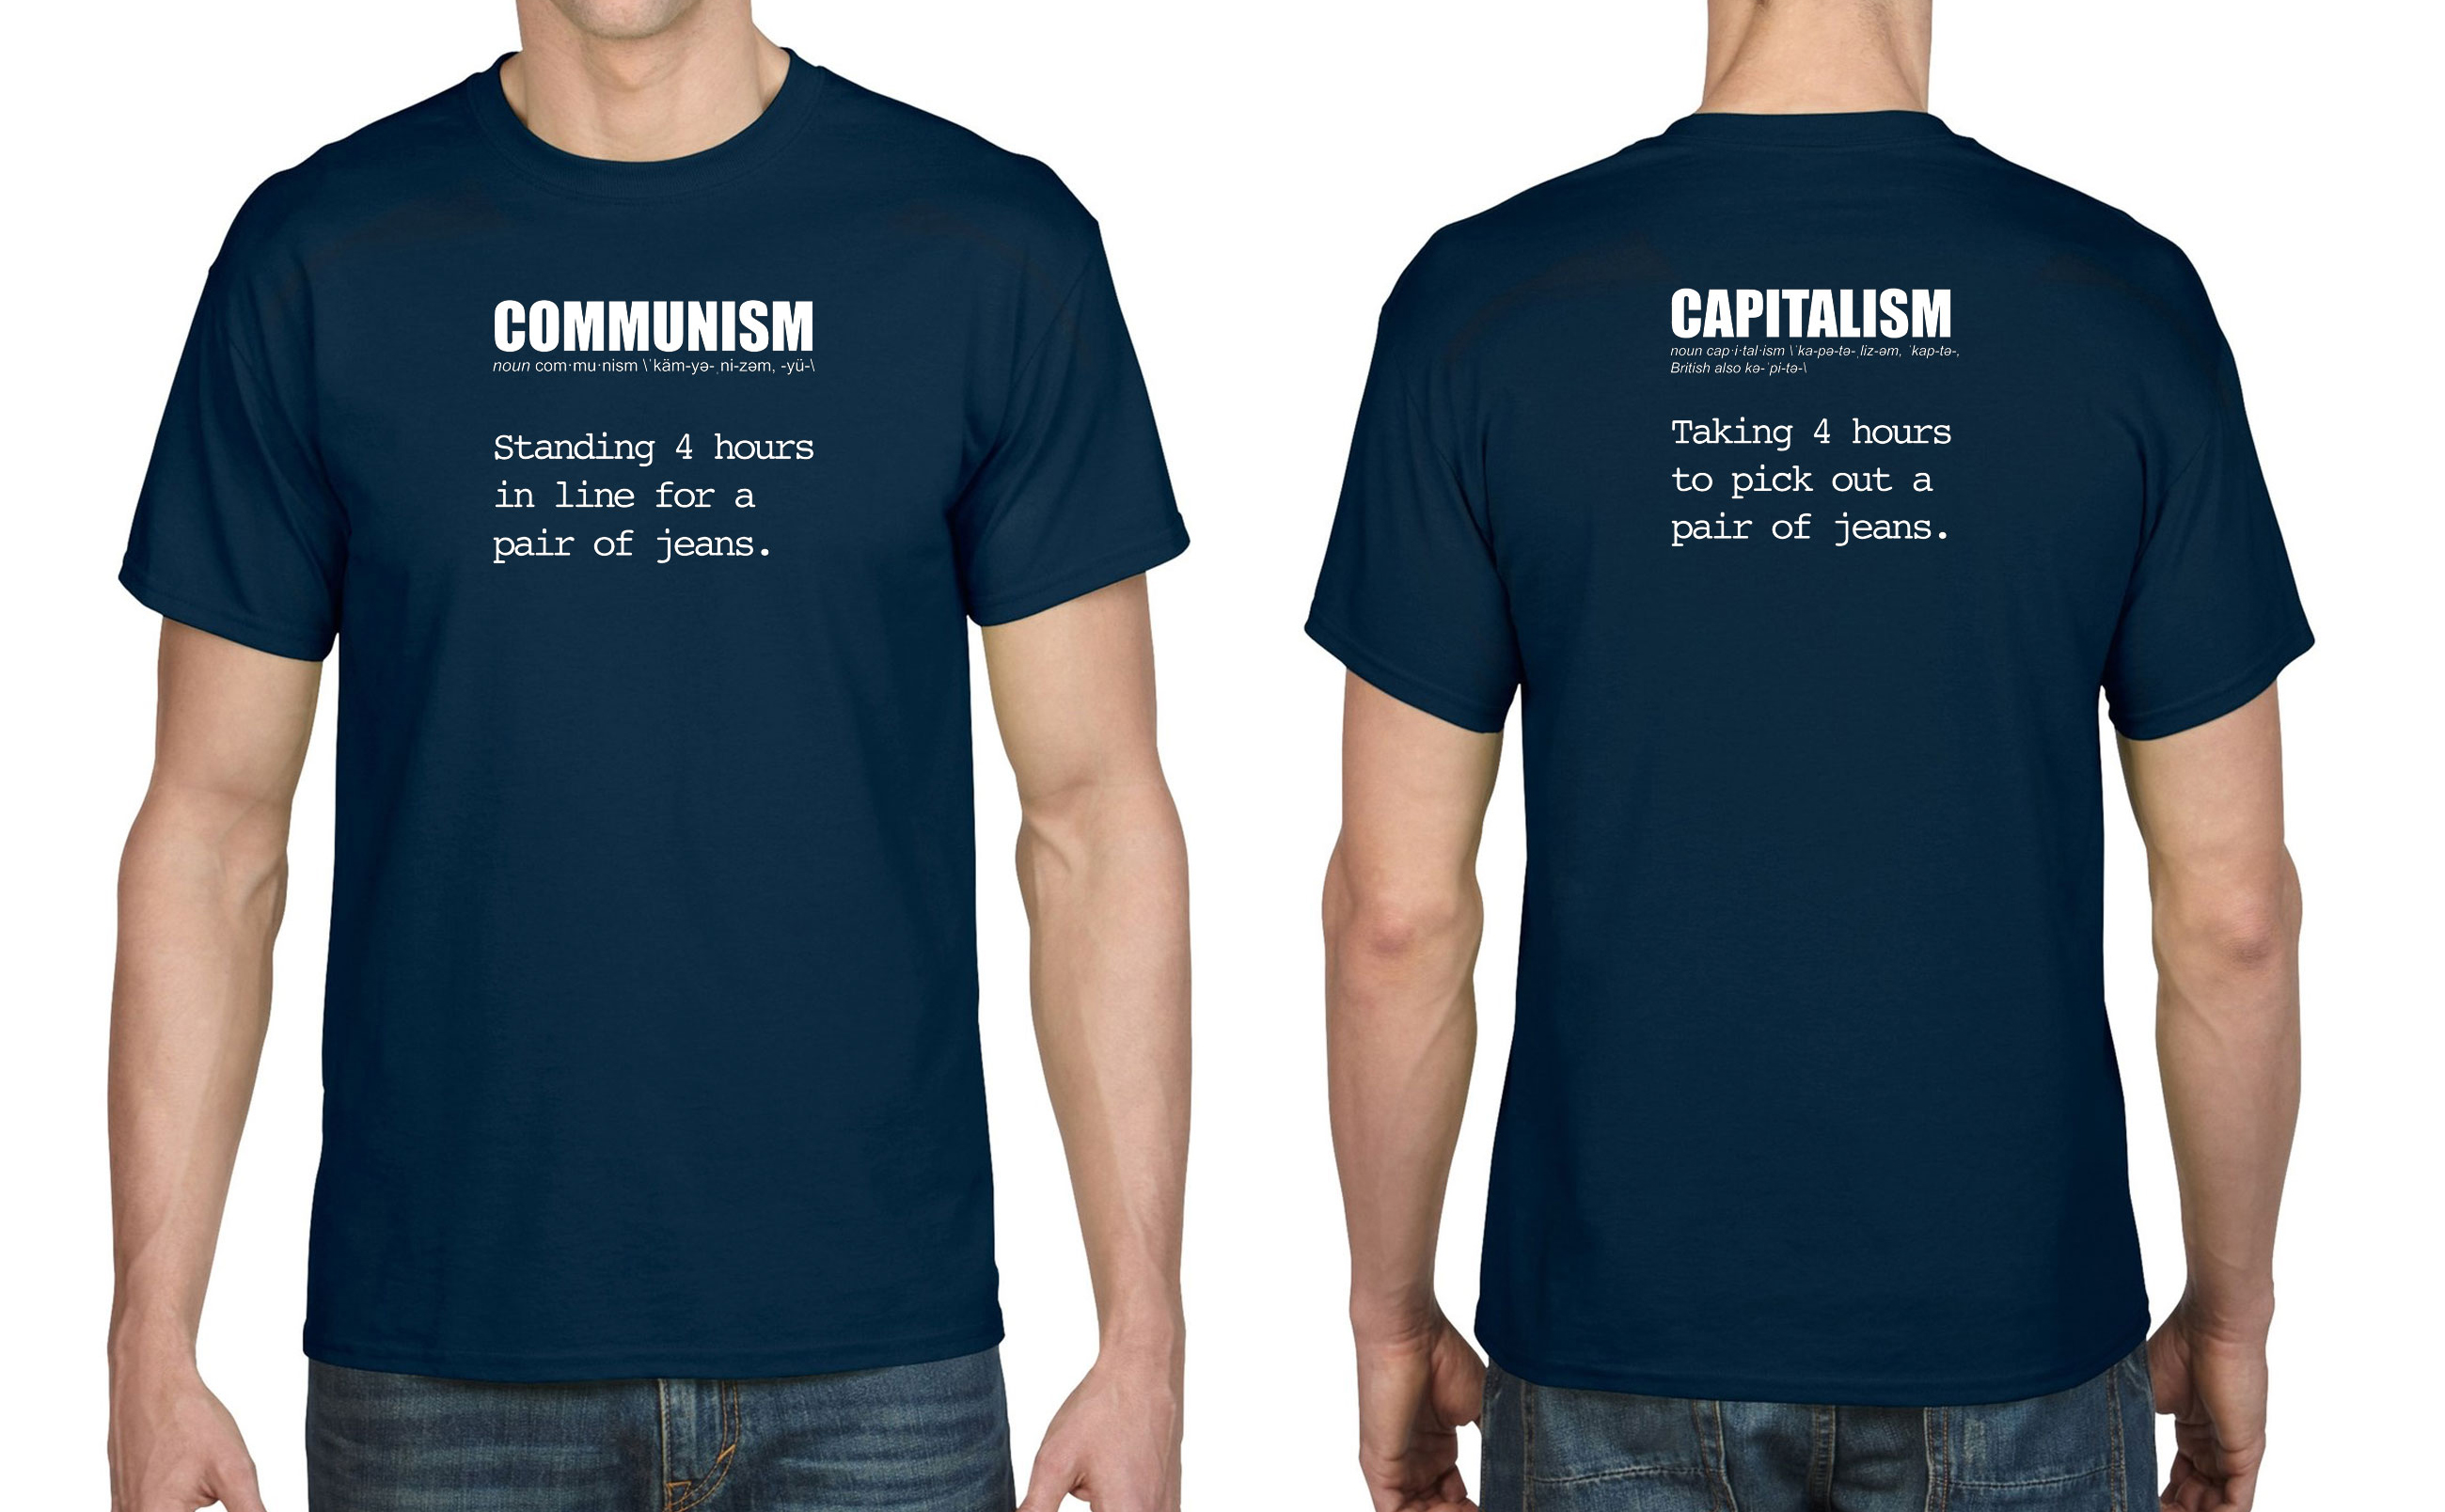 Communism Vs Capitalism T Shirt